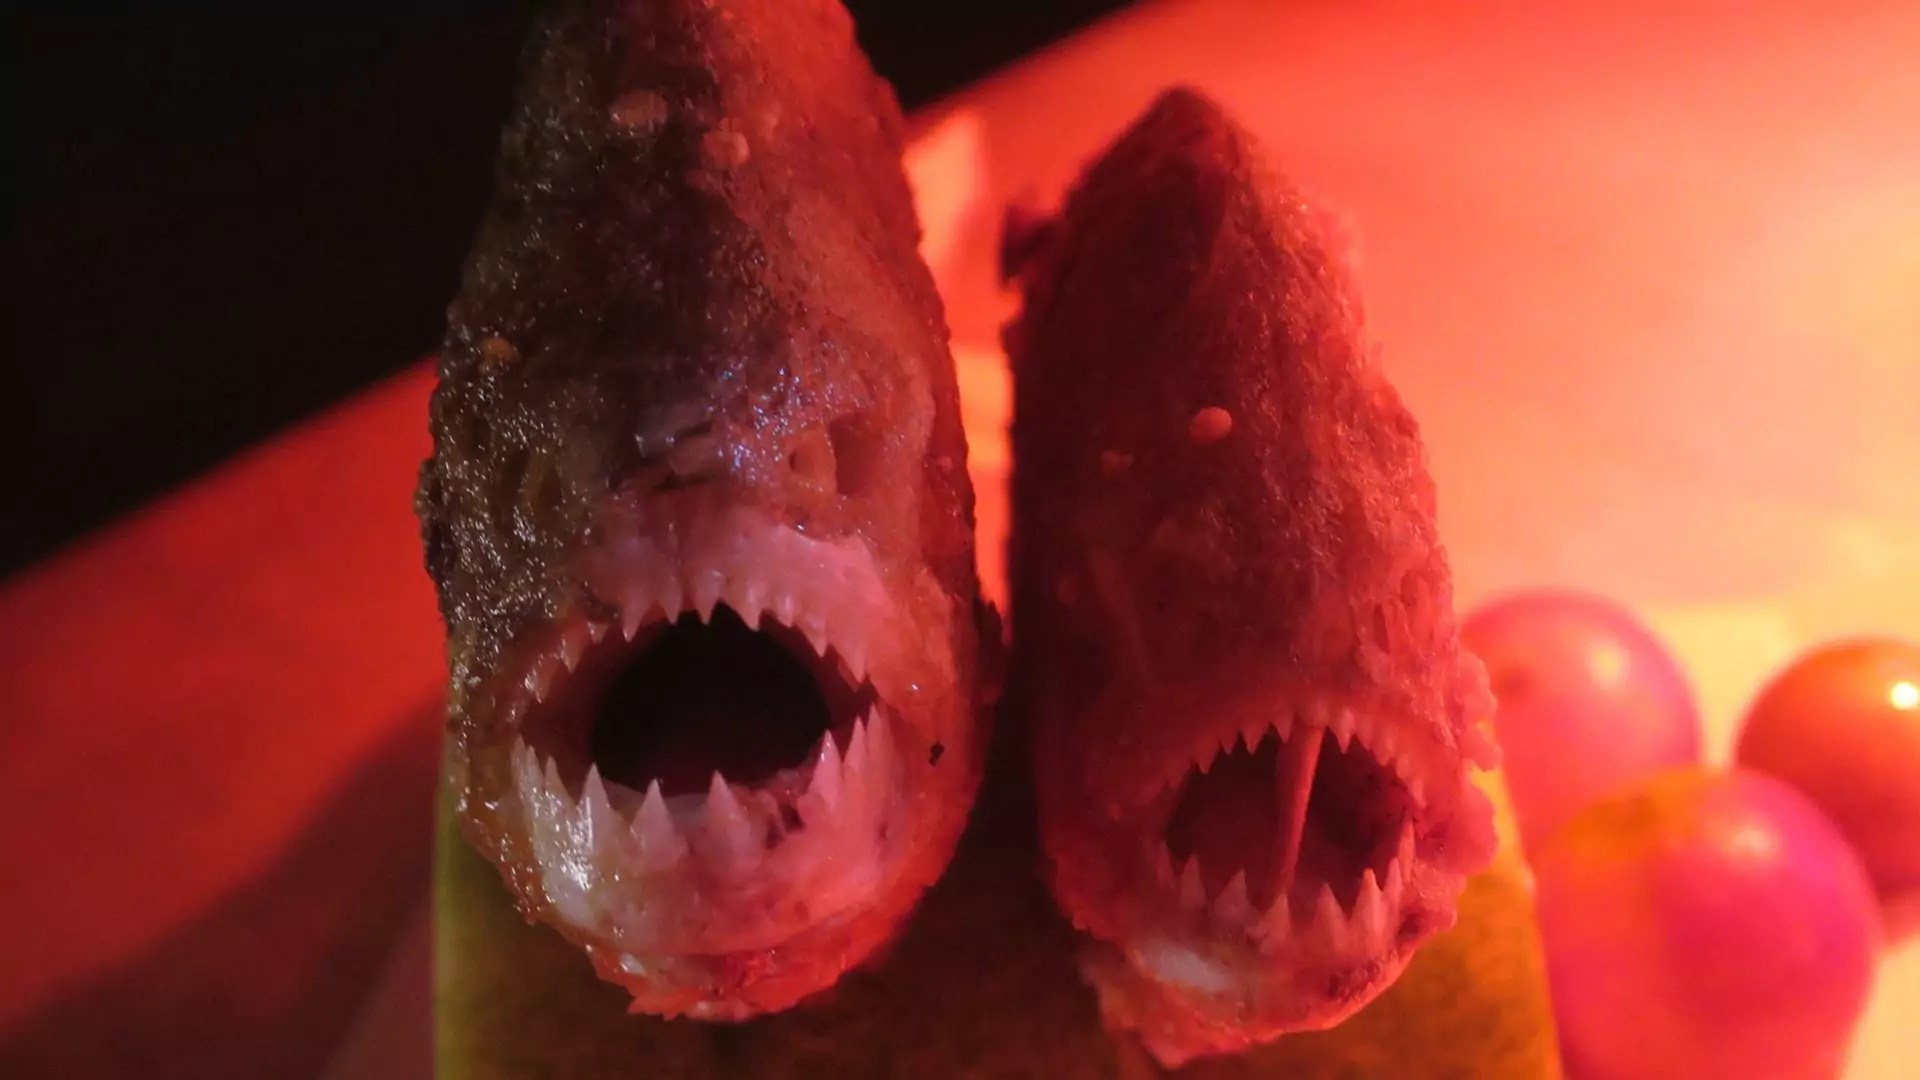 Close-up of two piranhas in red lighting.